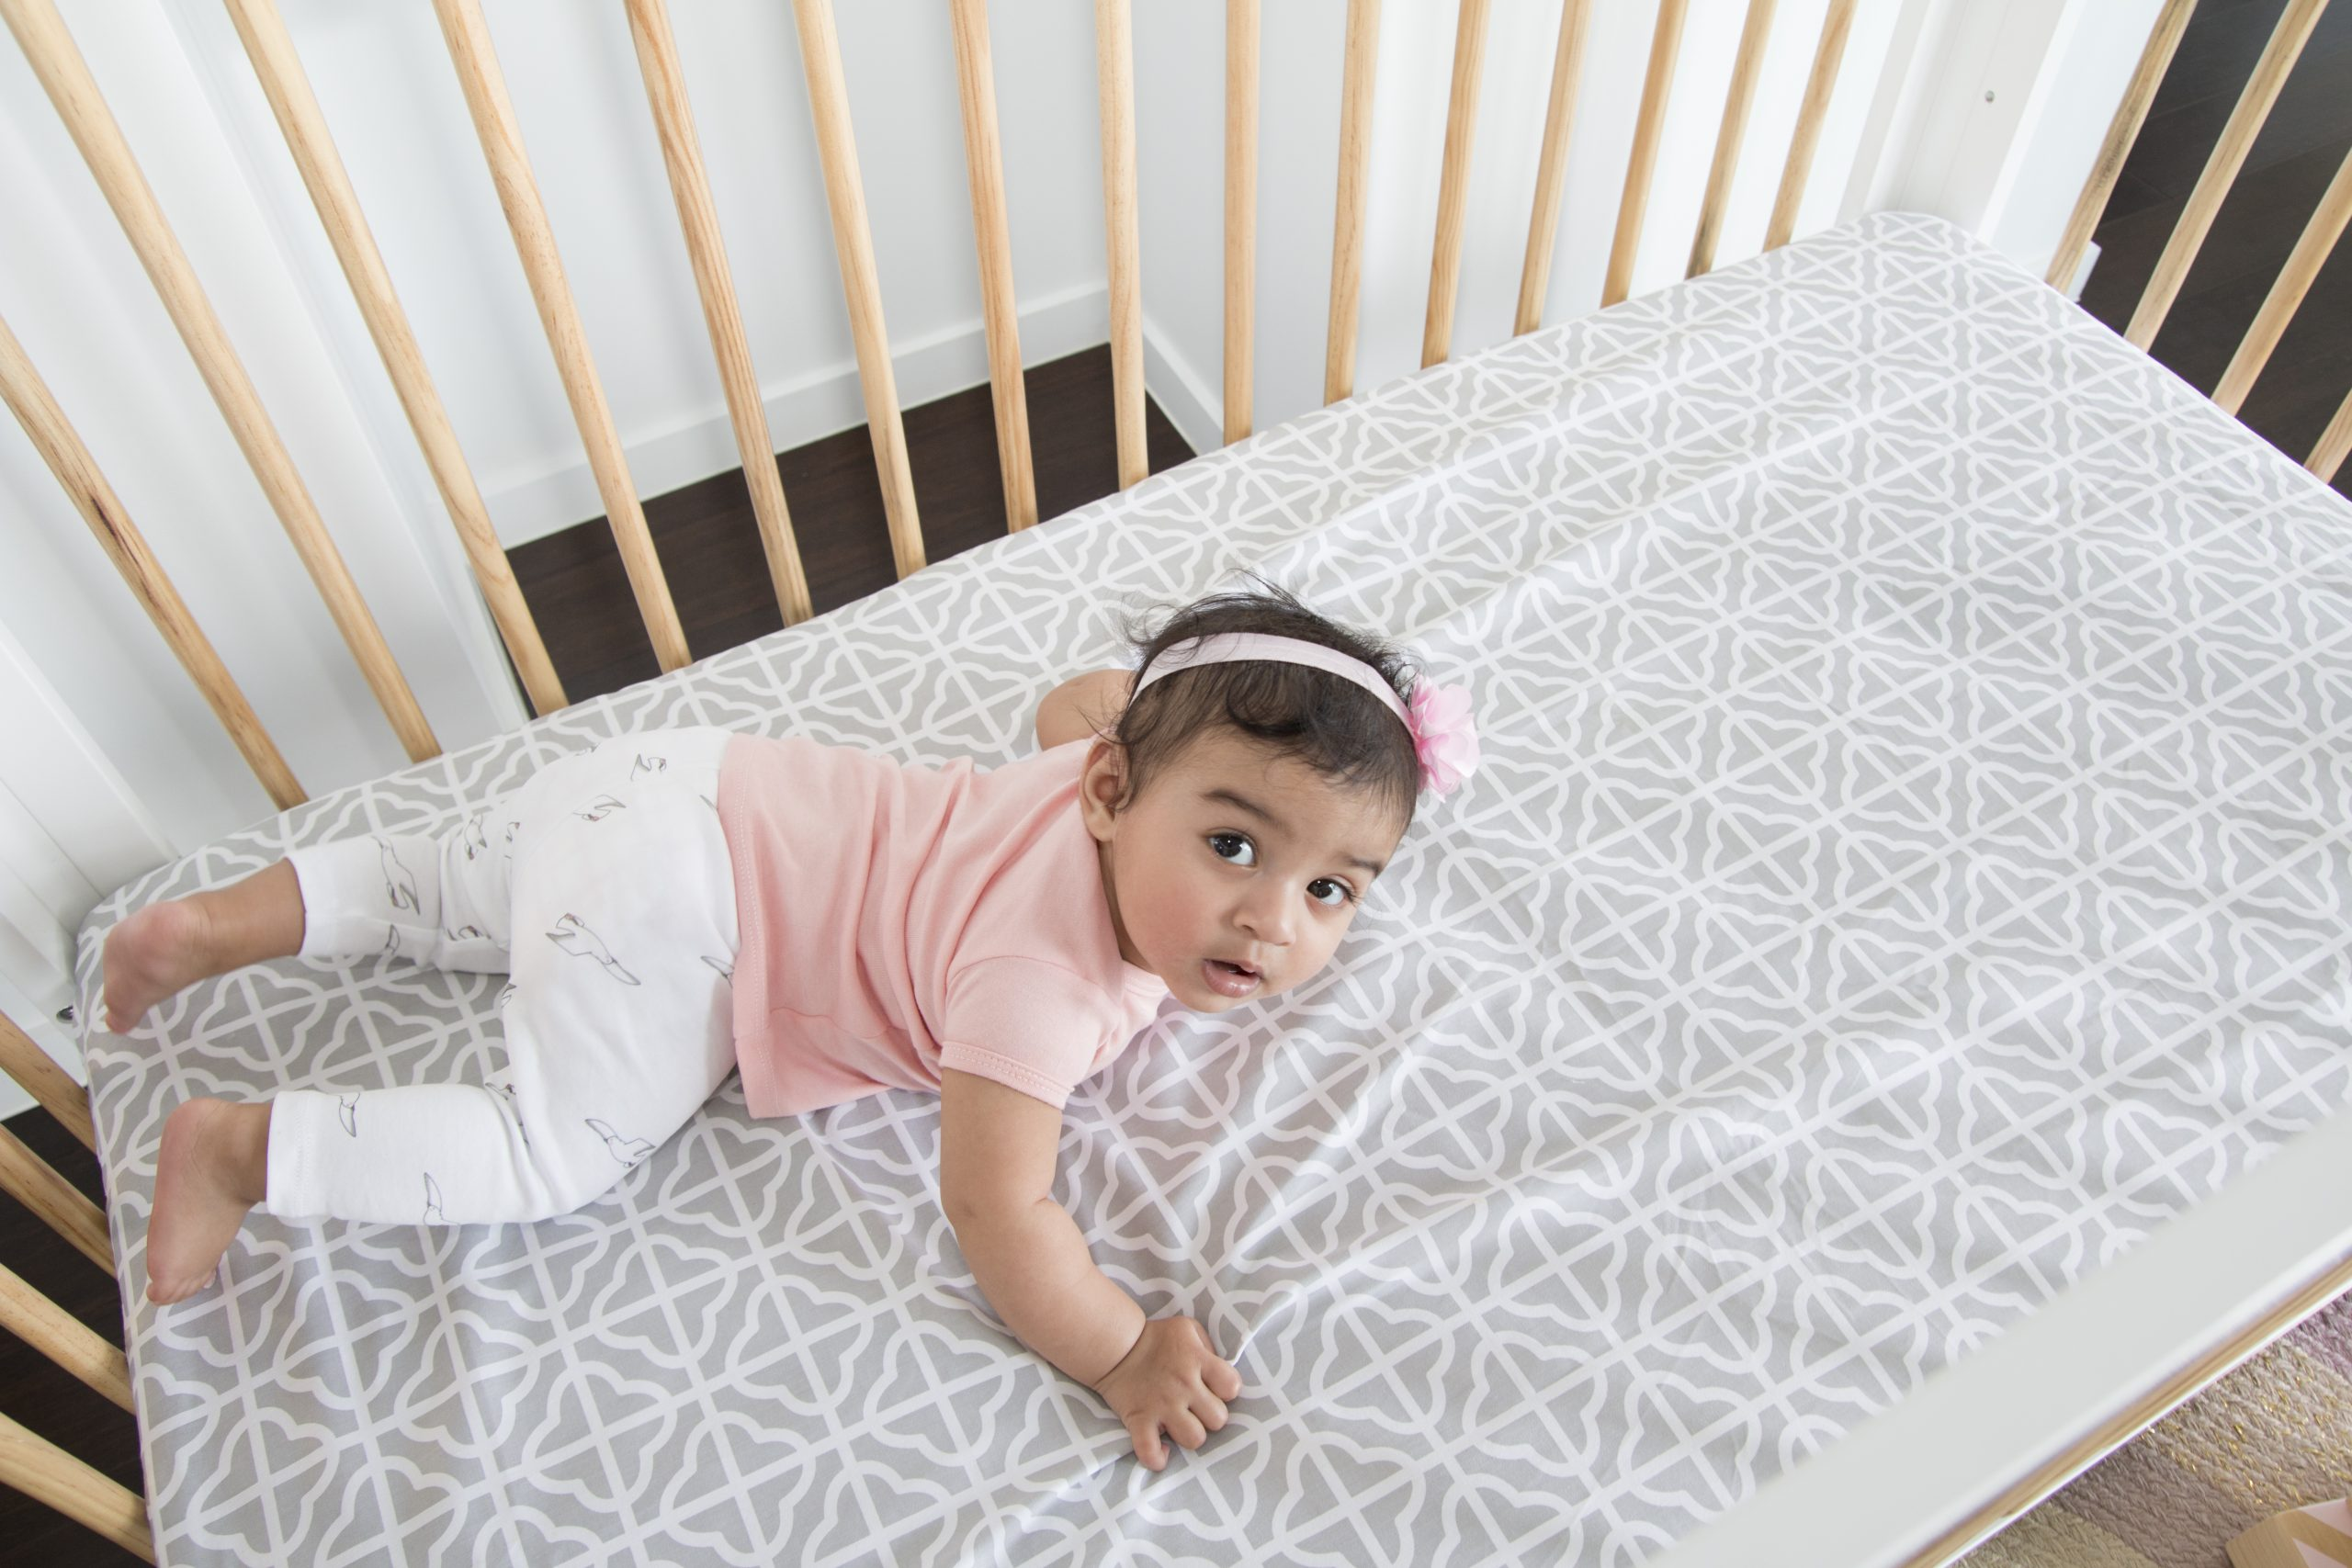 Is your baby's mattress safe?